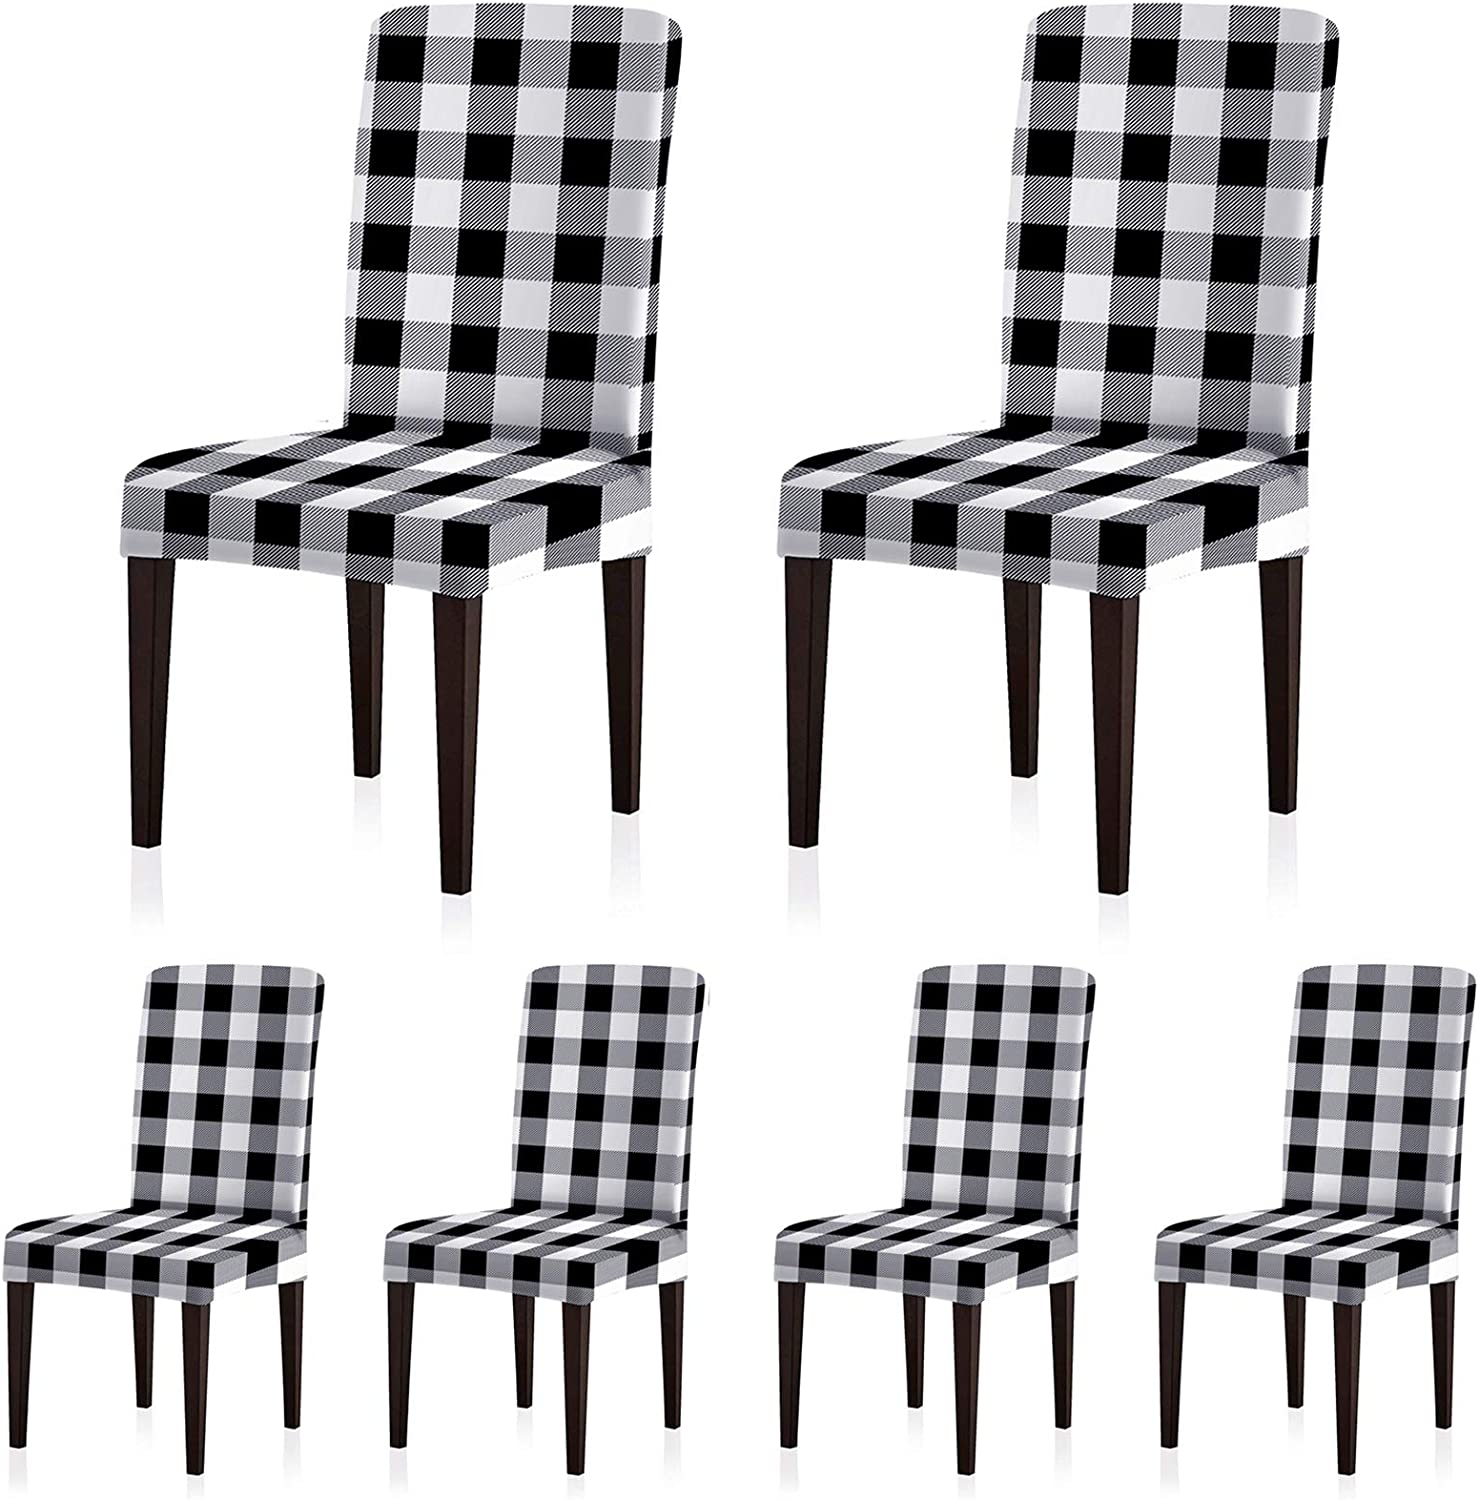 ColorBird Buffalo Check Spandex Chair Slipcovers Removable Universal Stretch Elastic Gingham Chair Protector Covers for Dining Room, Restaurant, Hotel, Banquet, Ceremony, Set of 6, Black/White Plaid